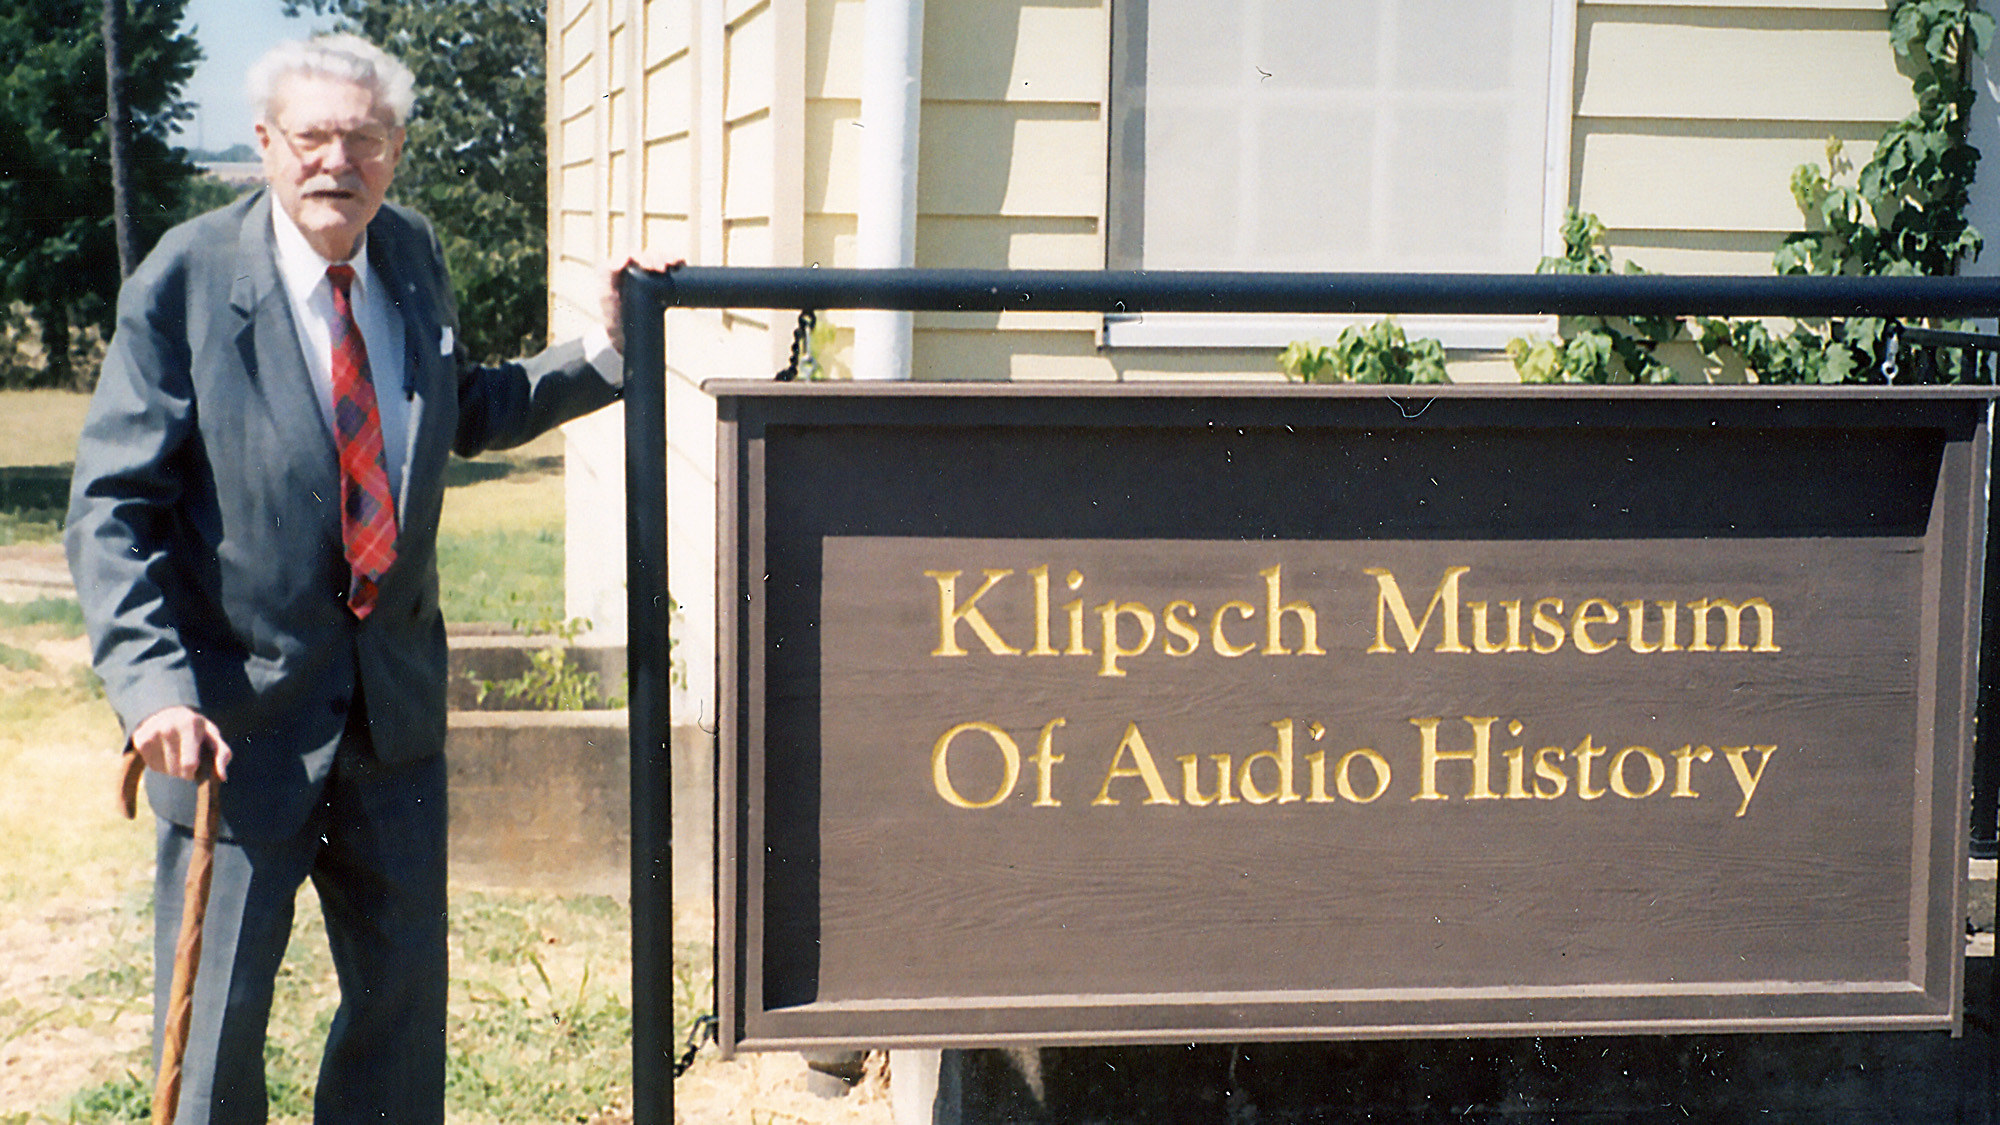 The Klipsch Museum of Audio History